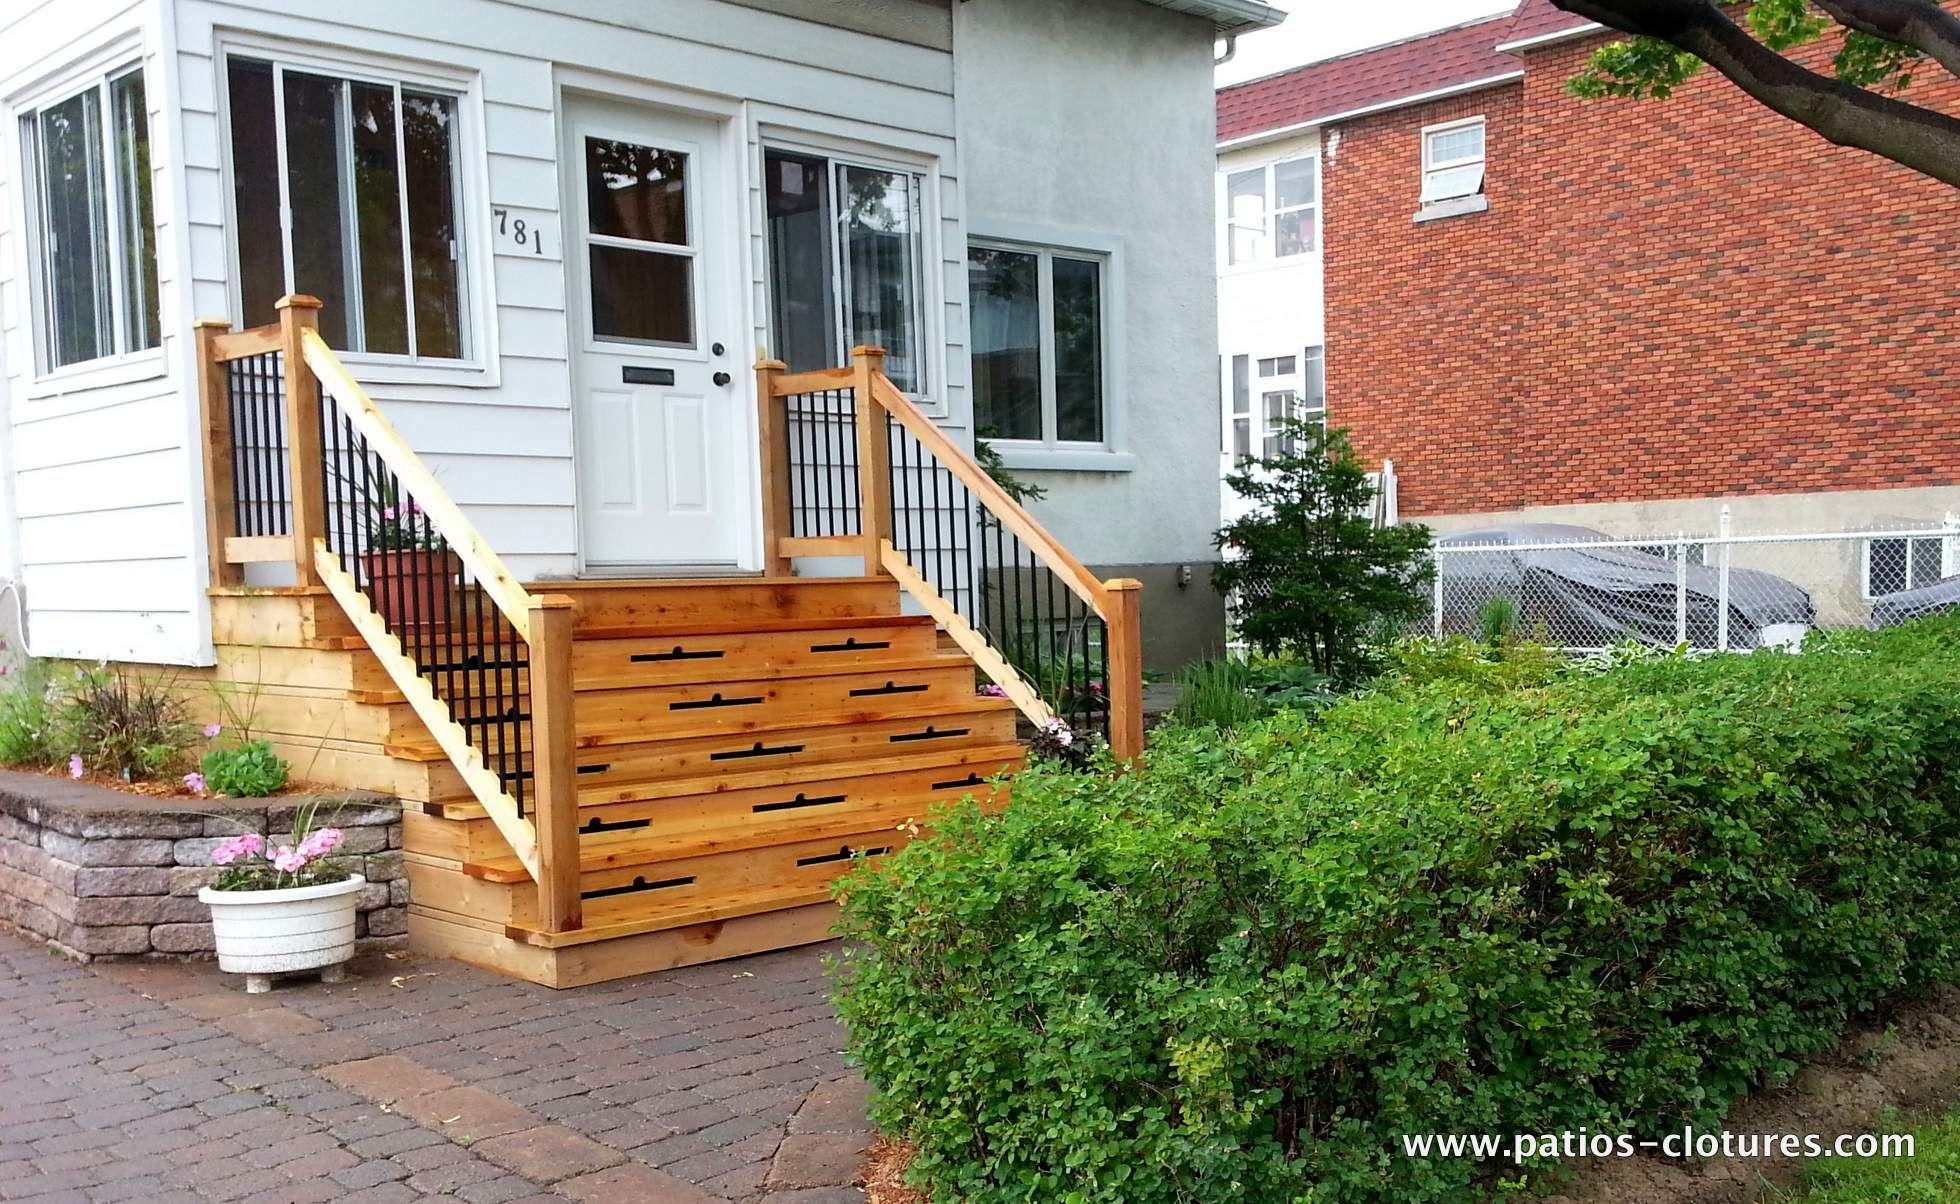 Design And Construction Of A Two Story Deck For A